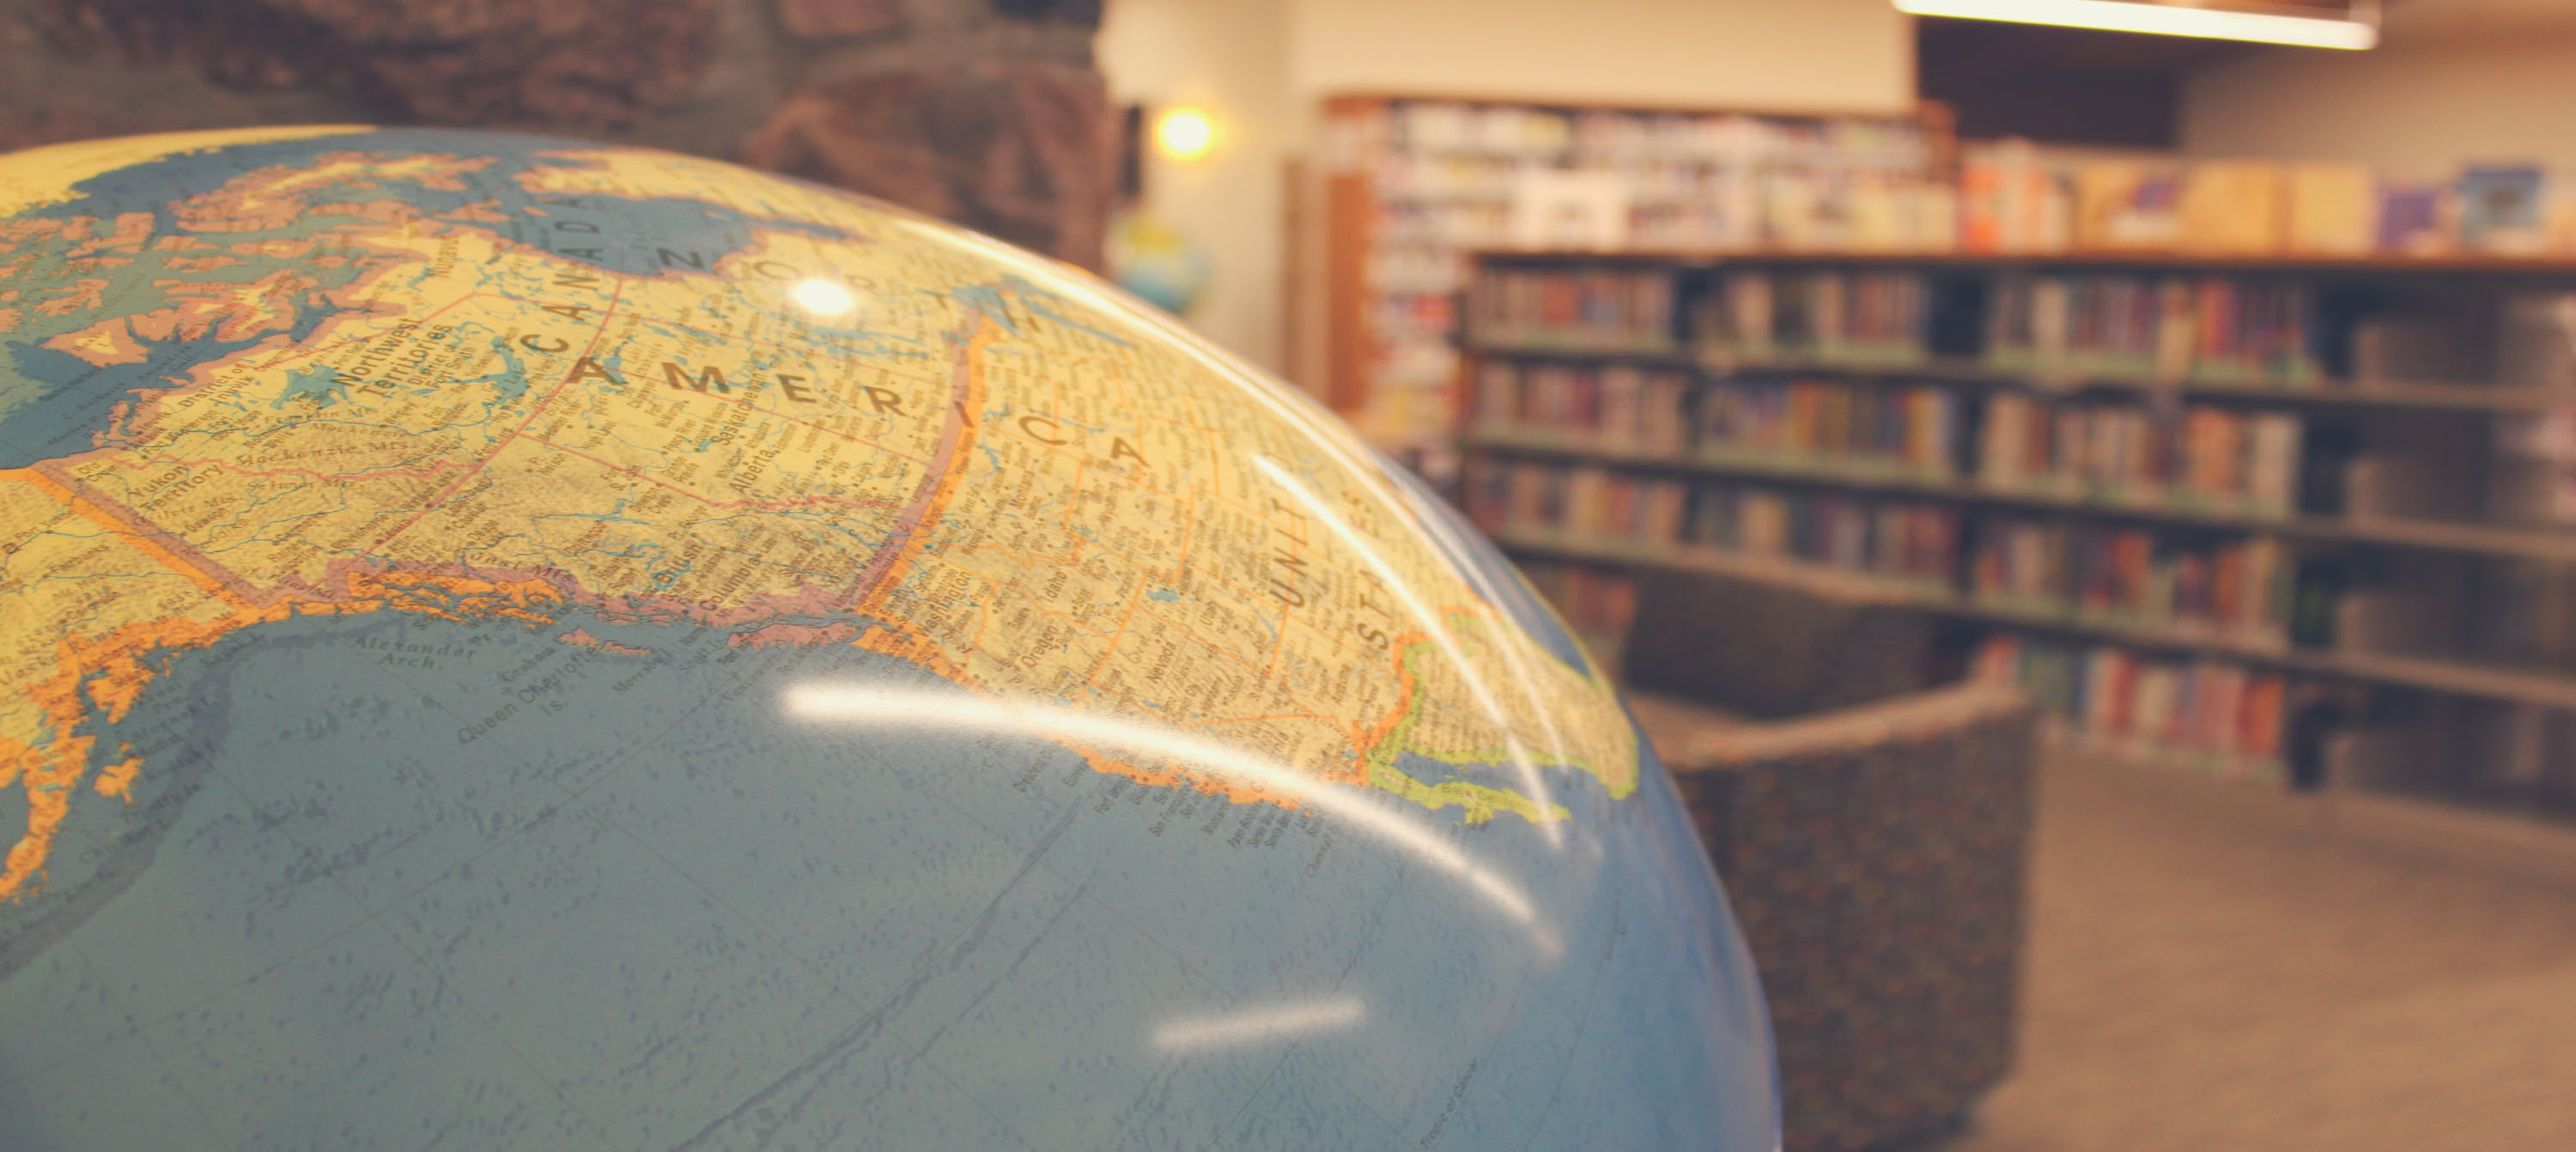 Photo of lighted globe with library shelves in the background.